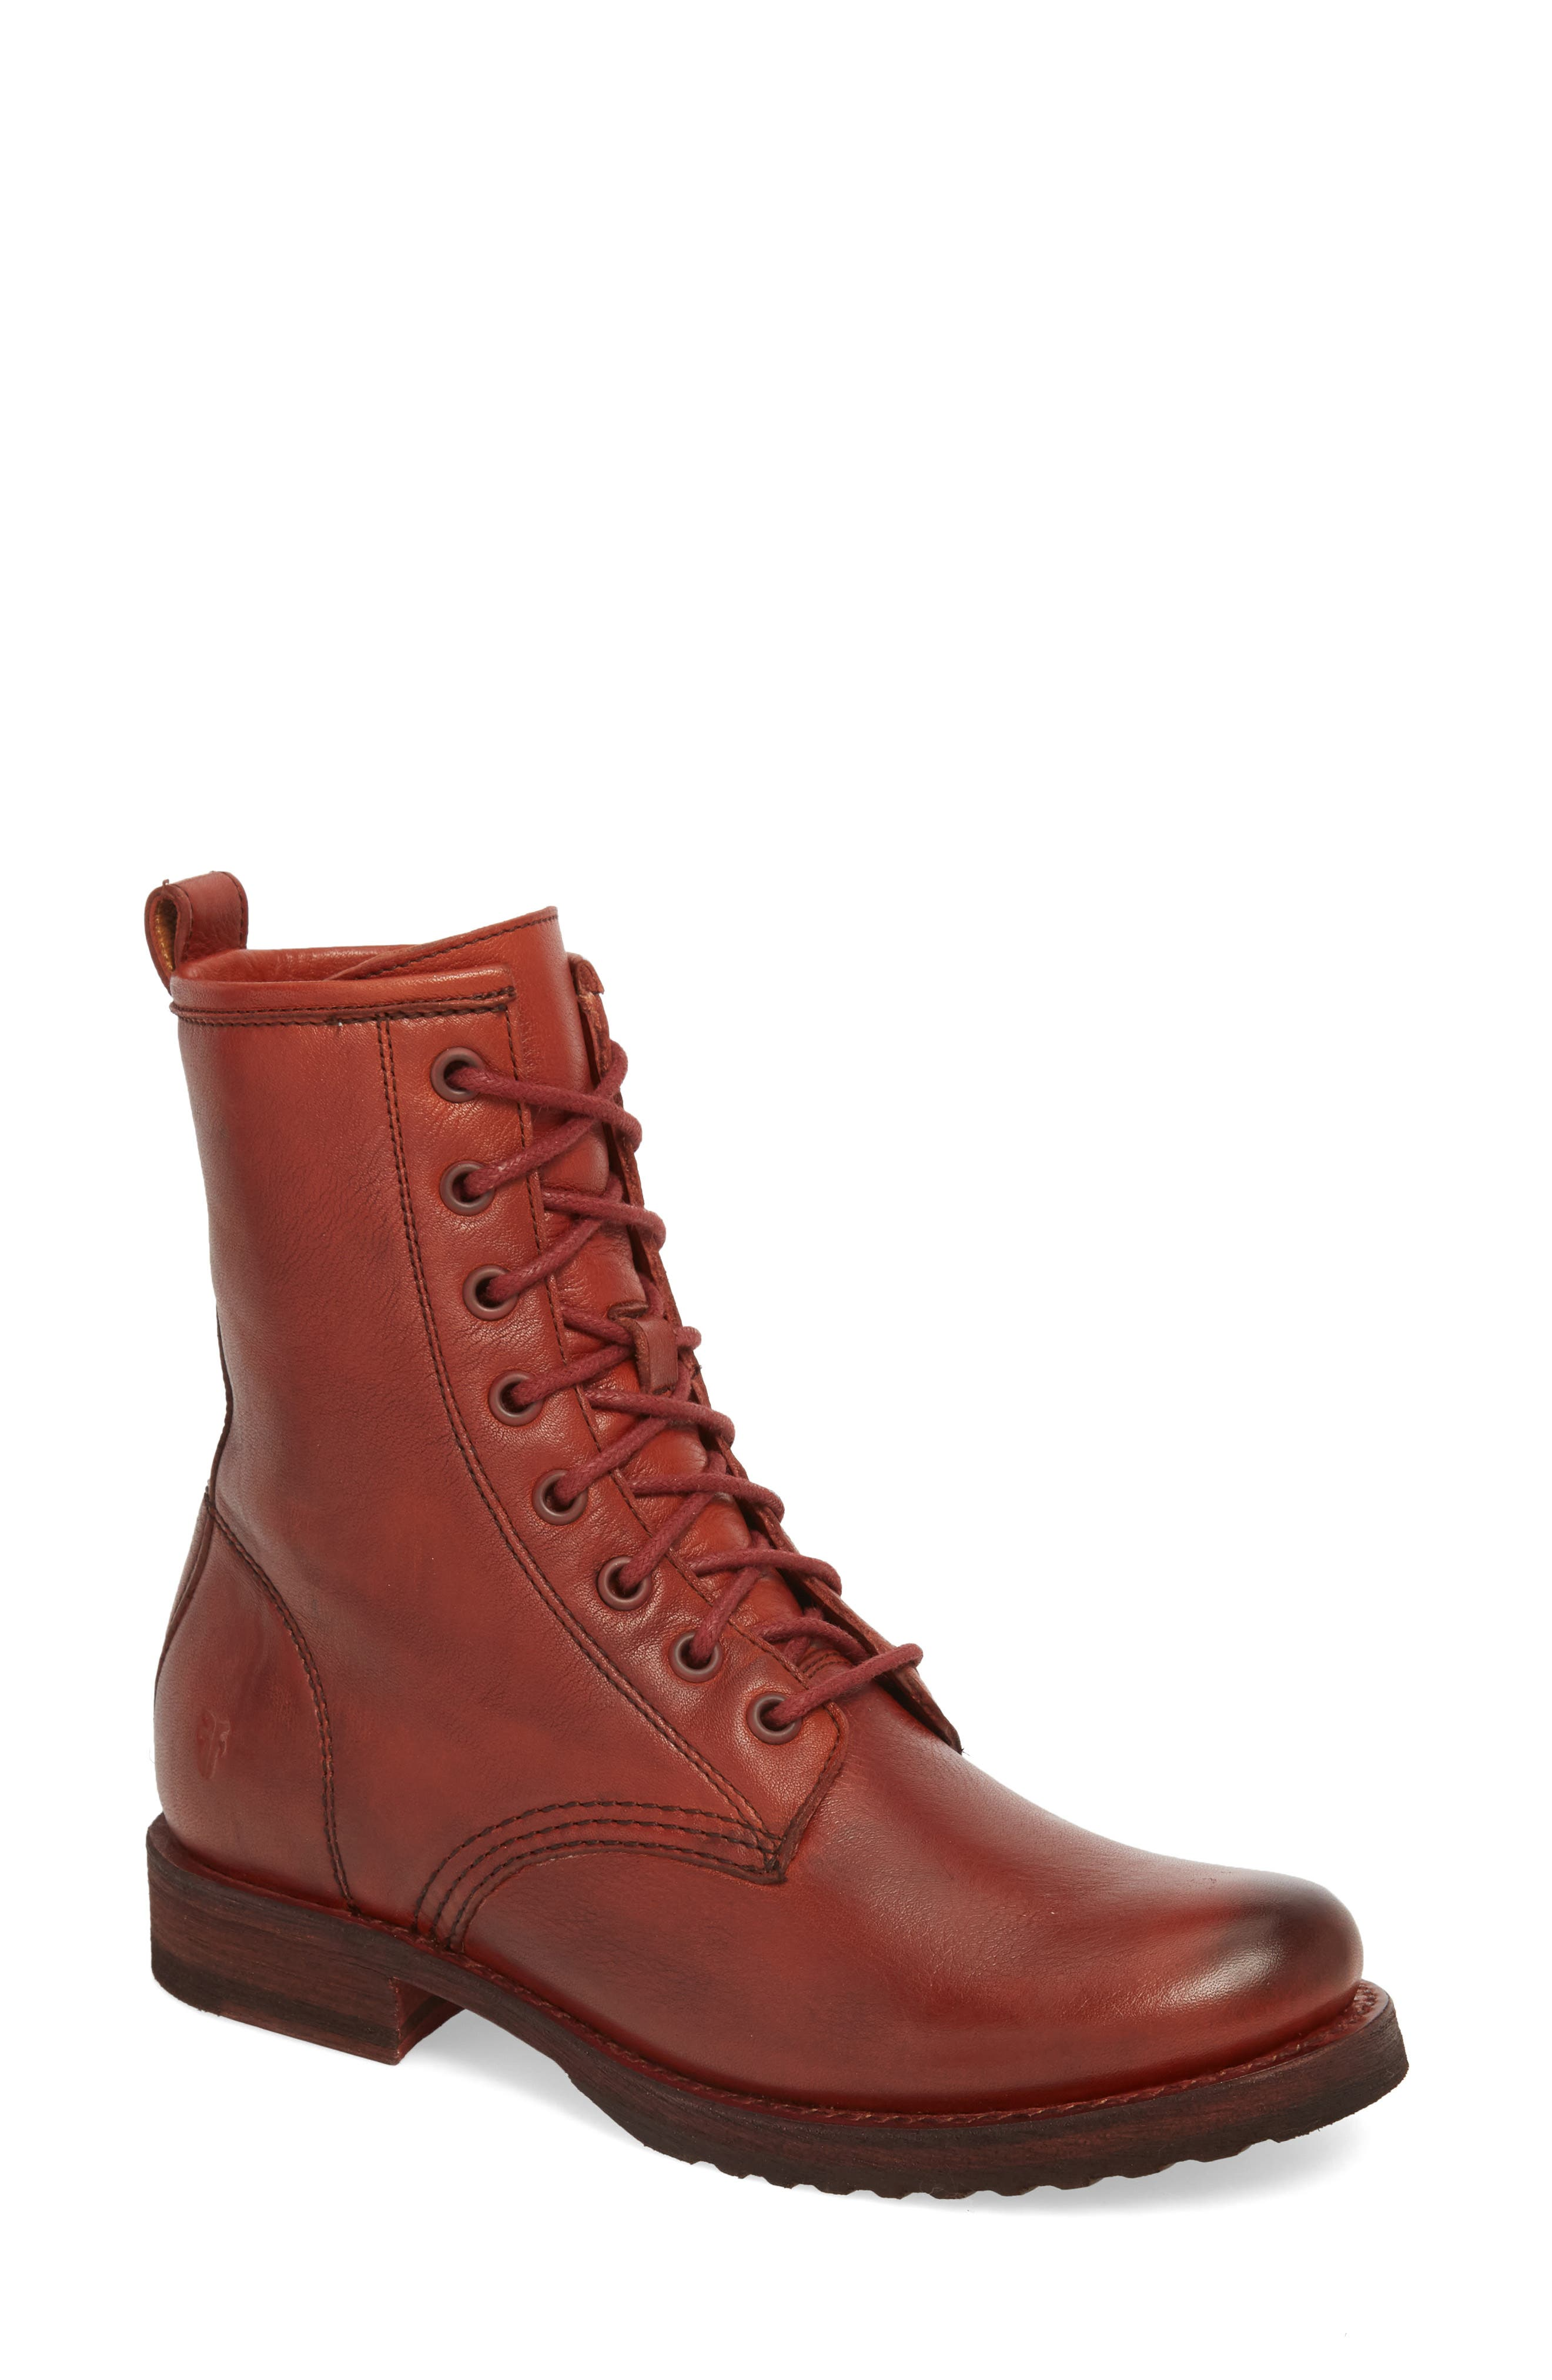 'Veronica Combat' Boot,                             Main thumbnail 1, color,                             Red Clay Leather